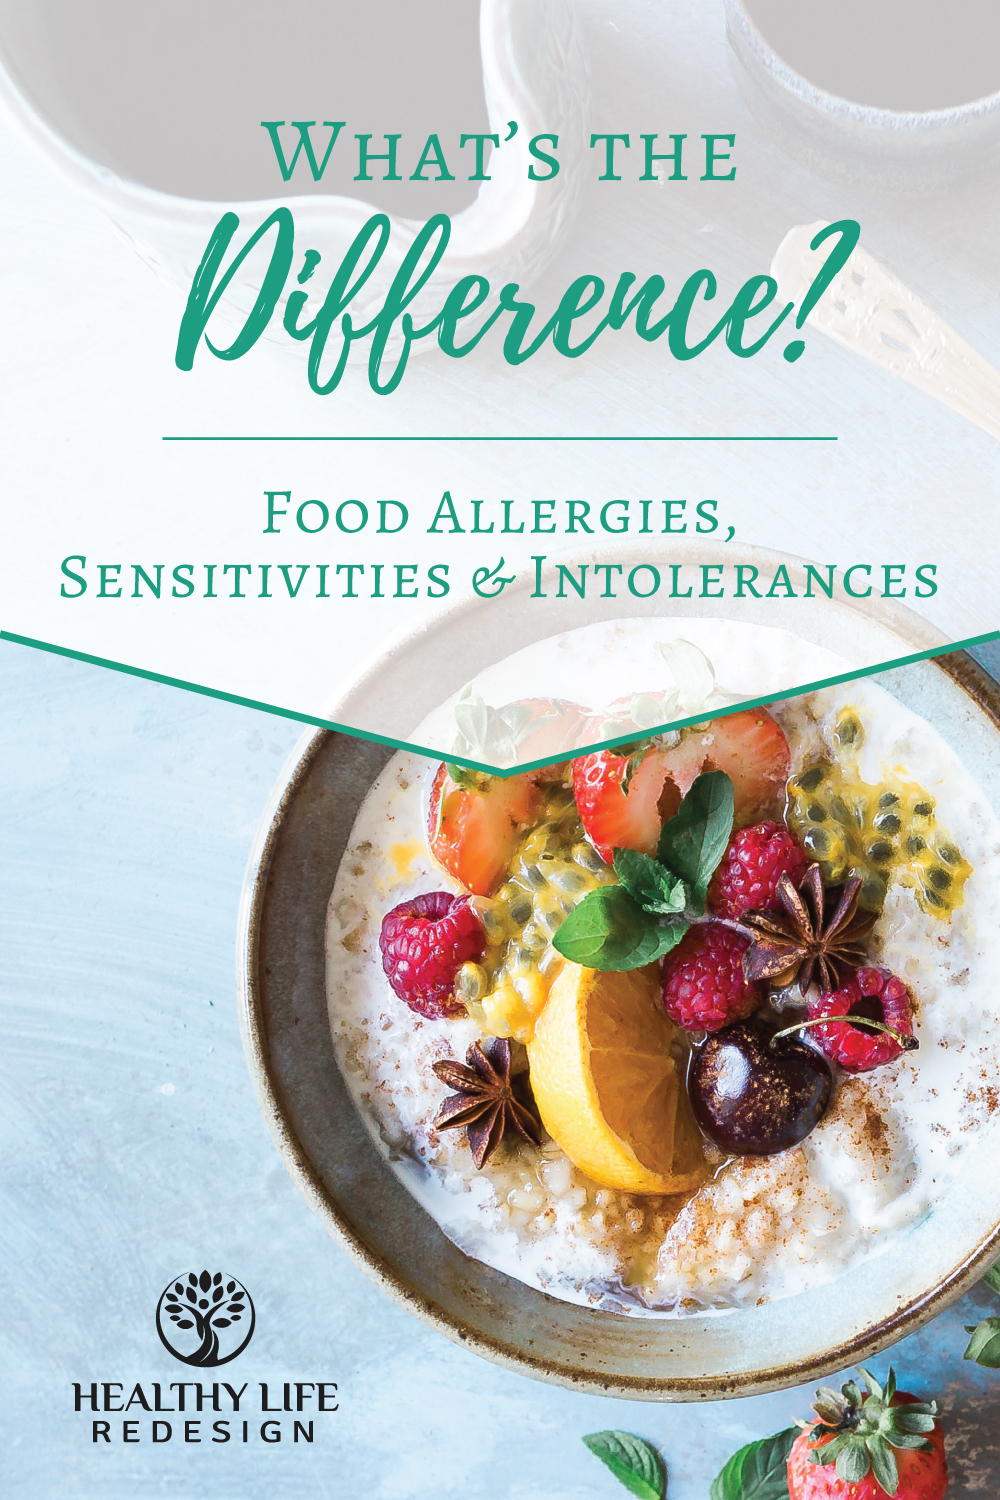 Food Allergies, Sensitivities and Intolerances… What's the Difference?